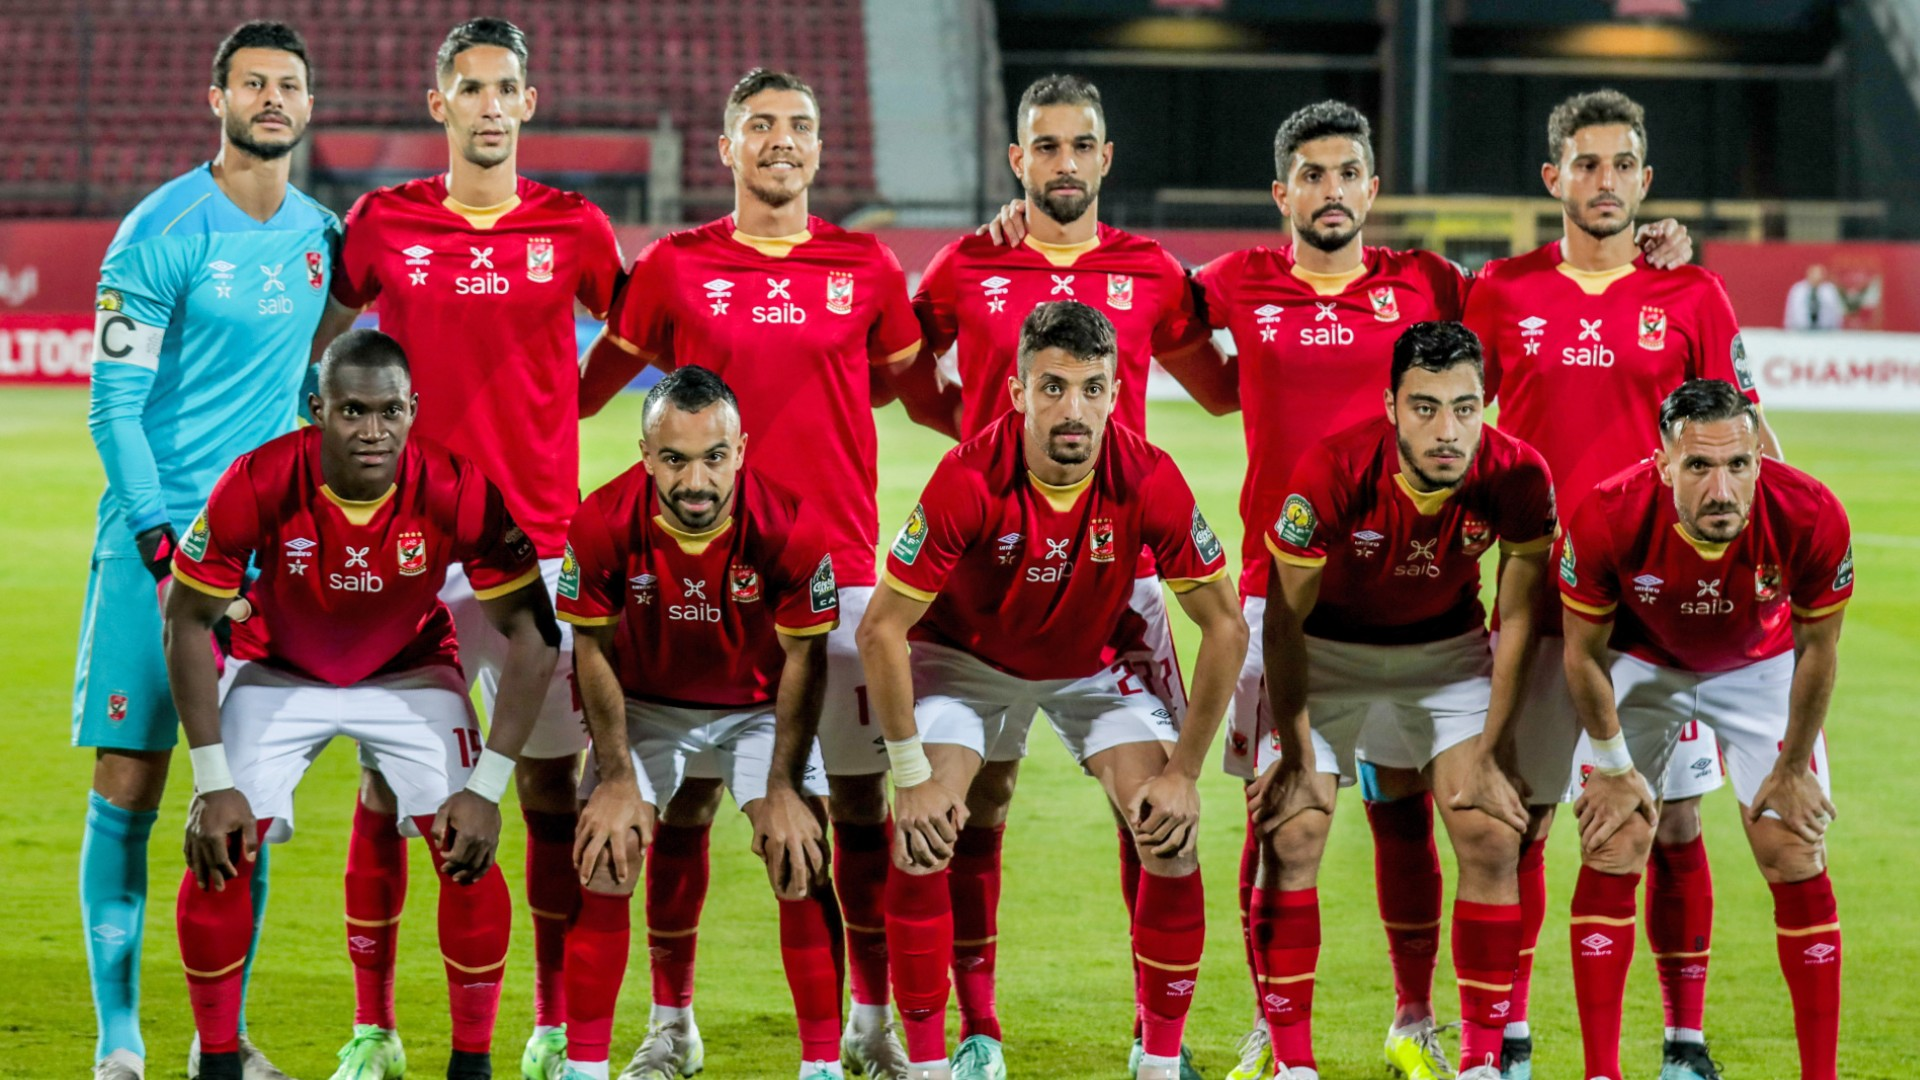 Al Ahly XI to face Kaizer Chiefs – Mosimane starts El Shenawy, Dieng out